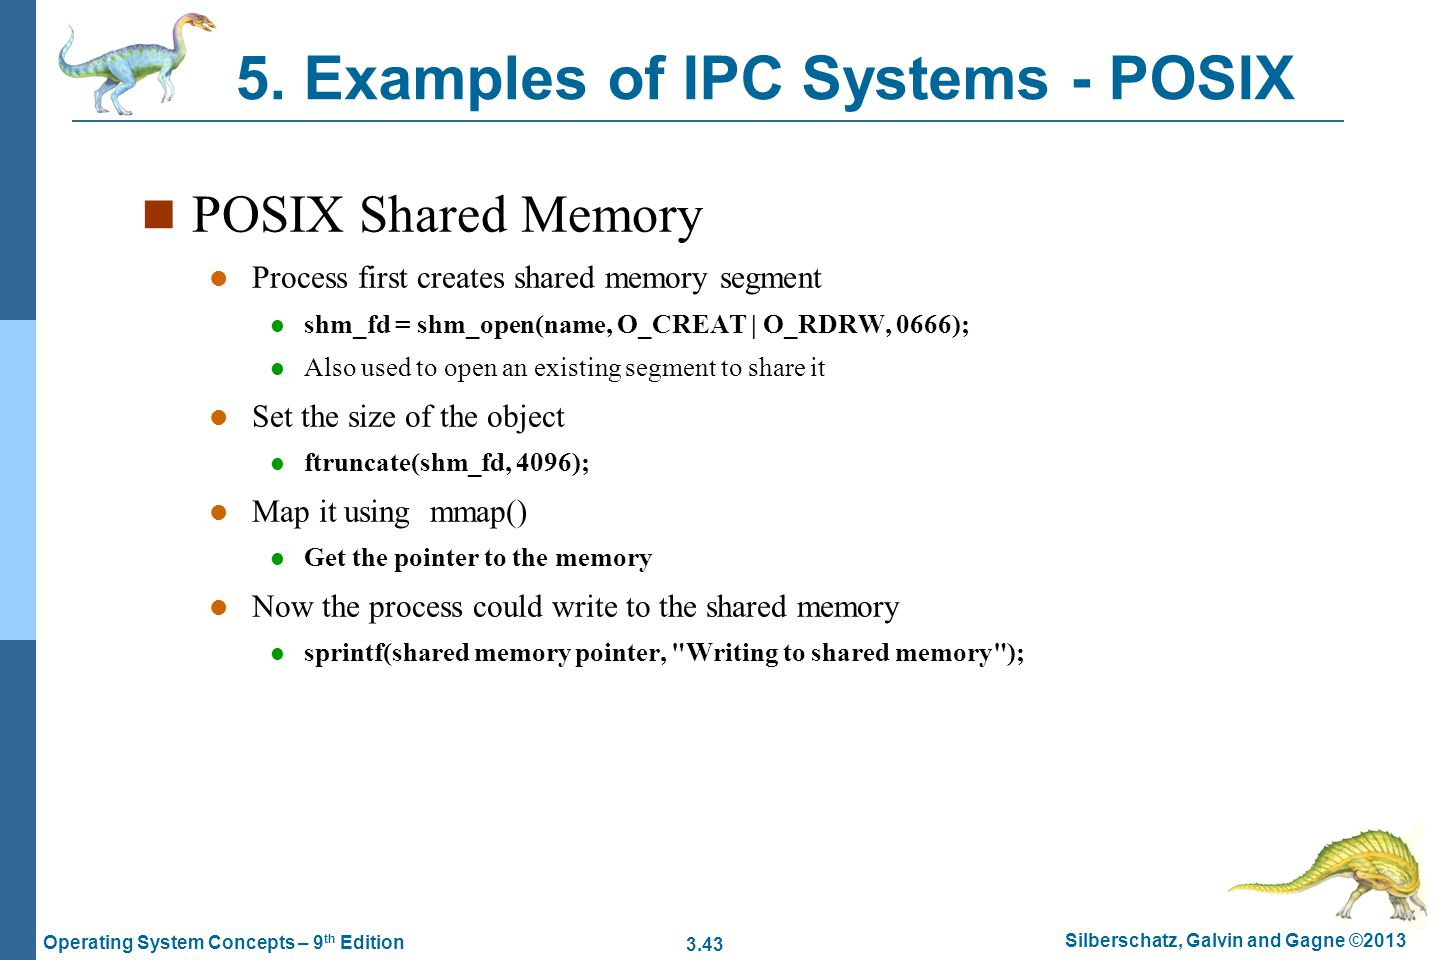 3.43 Silberschatz, Galvin and Gagne ©2013 Operating System Concepts – 9 th Edition 5. Examples of IPC Systems - POSIX n POSIX Shared Memory l Process